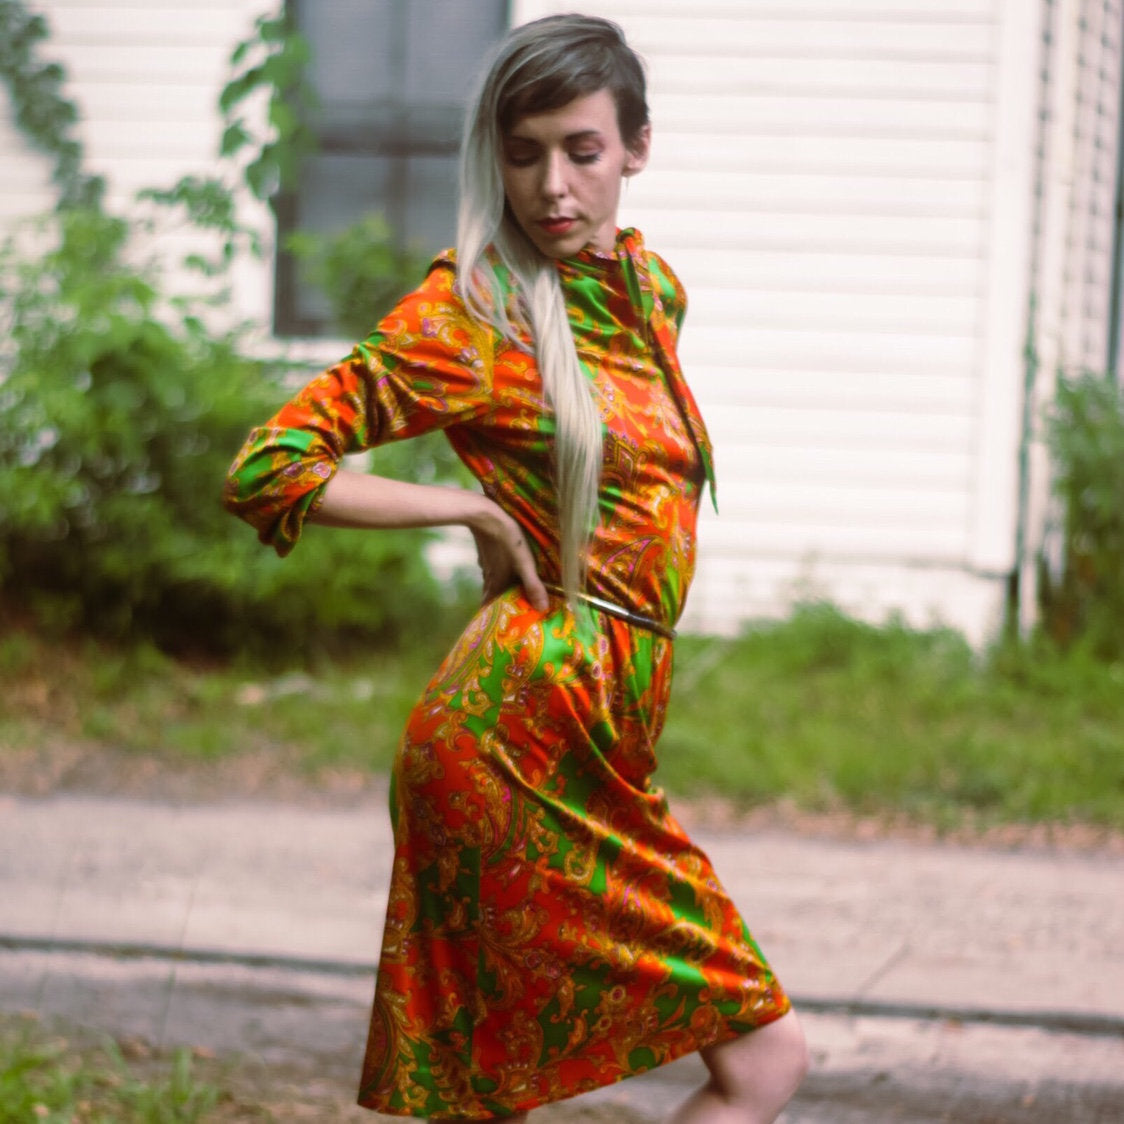 1970s Mod Paisley Print Bright Orange Shift Dress - Everyday in Retrograde